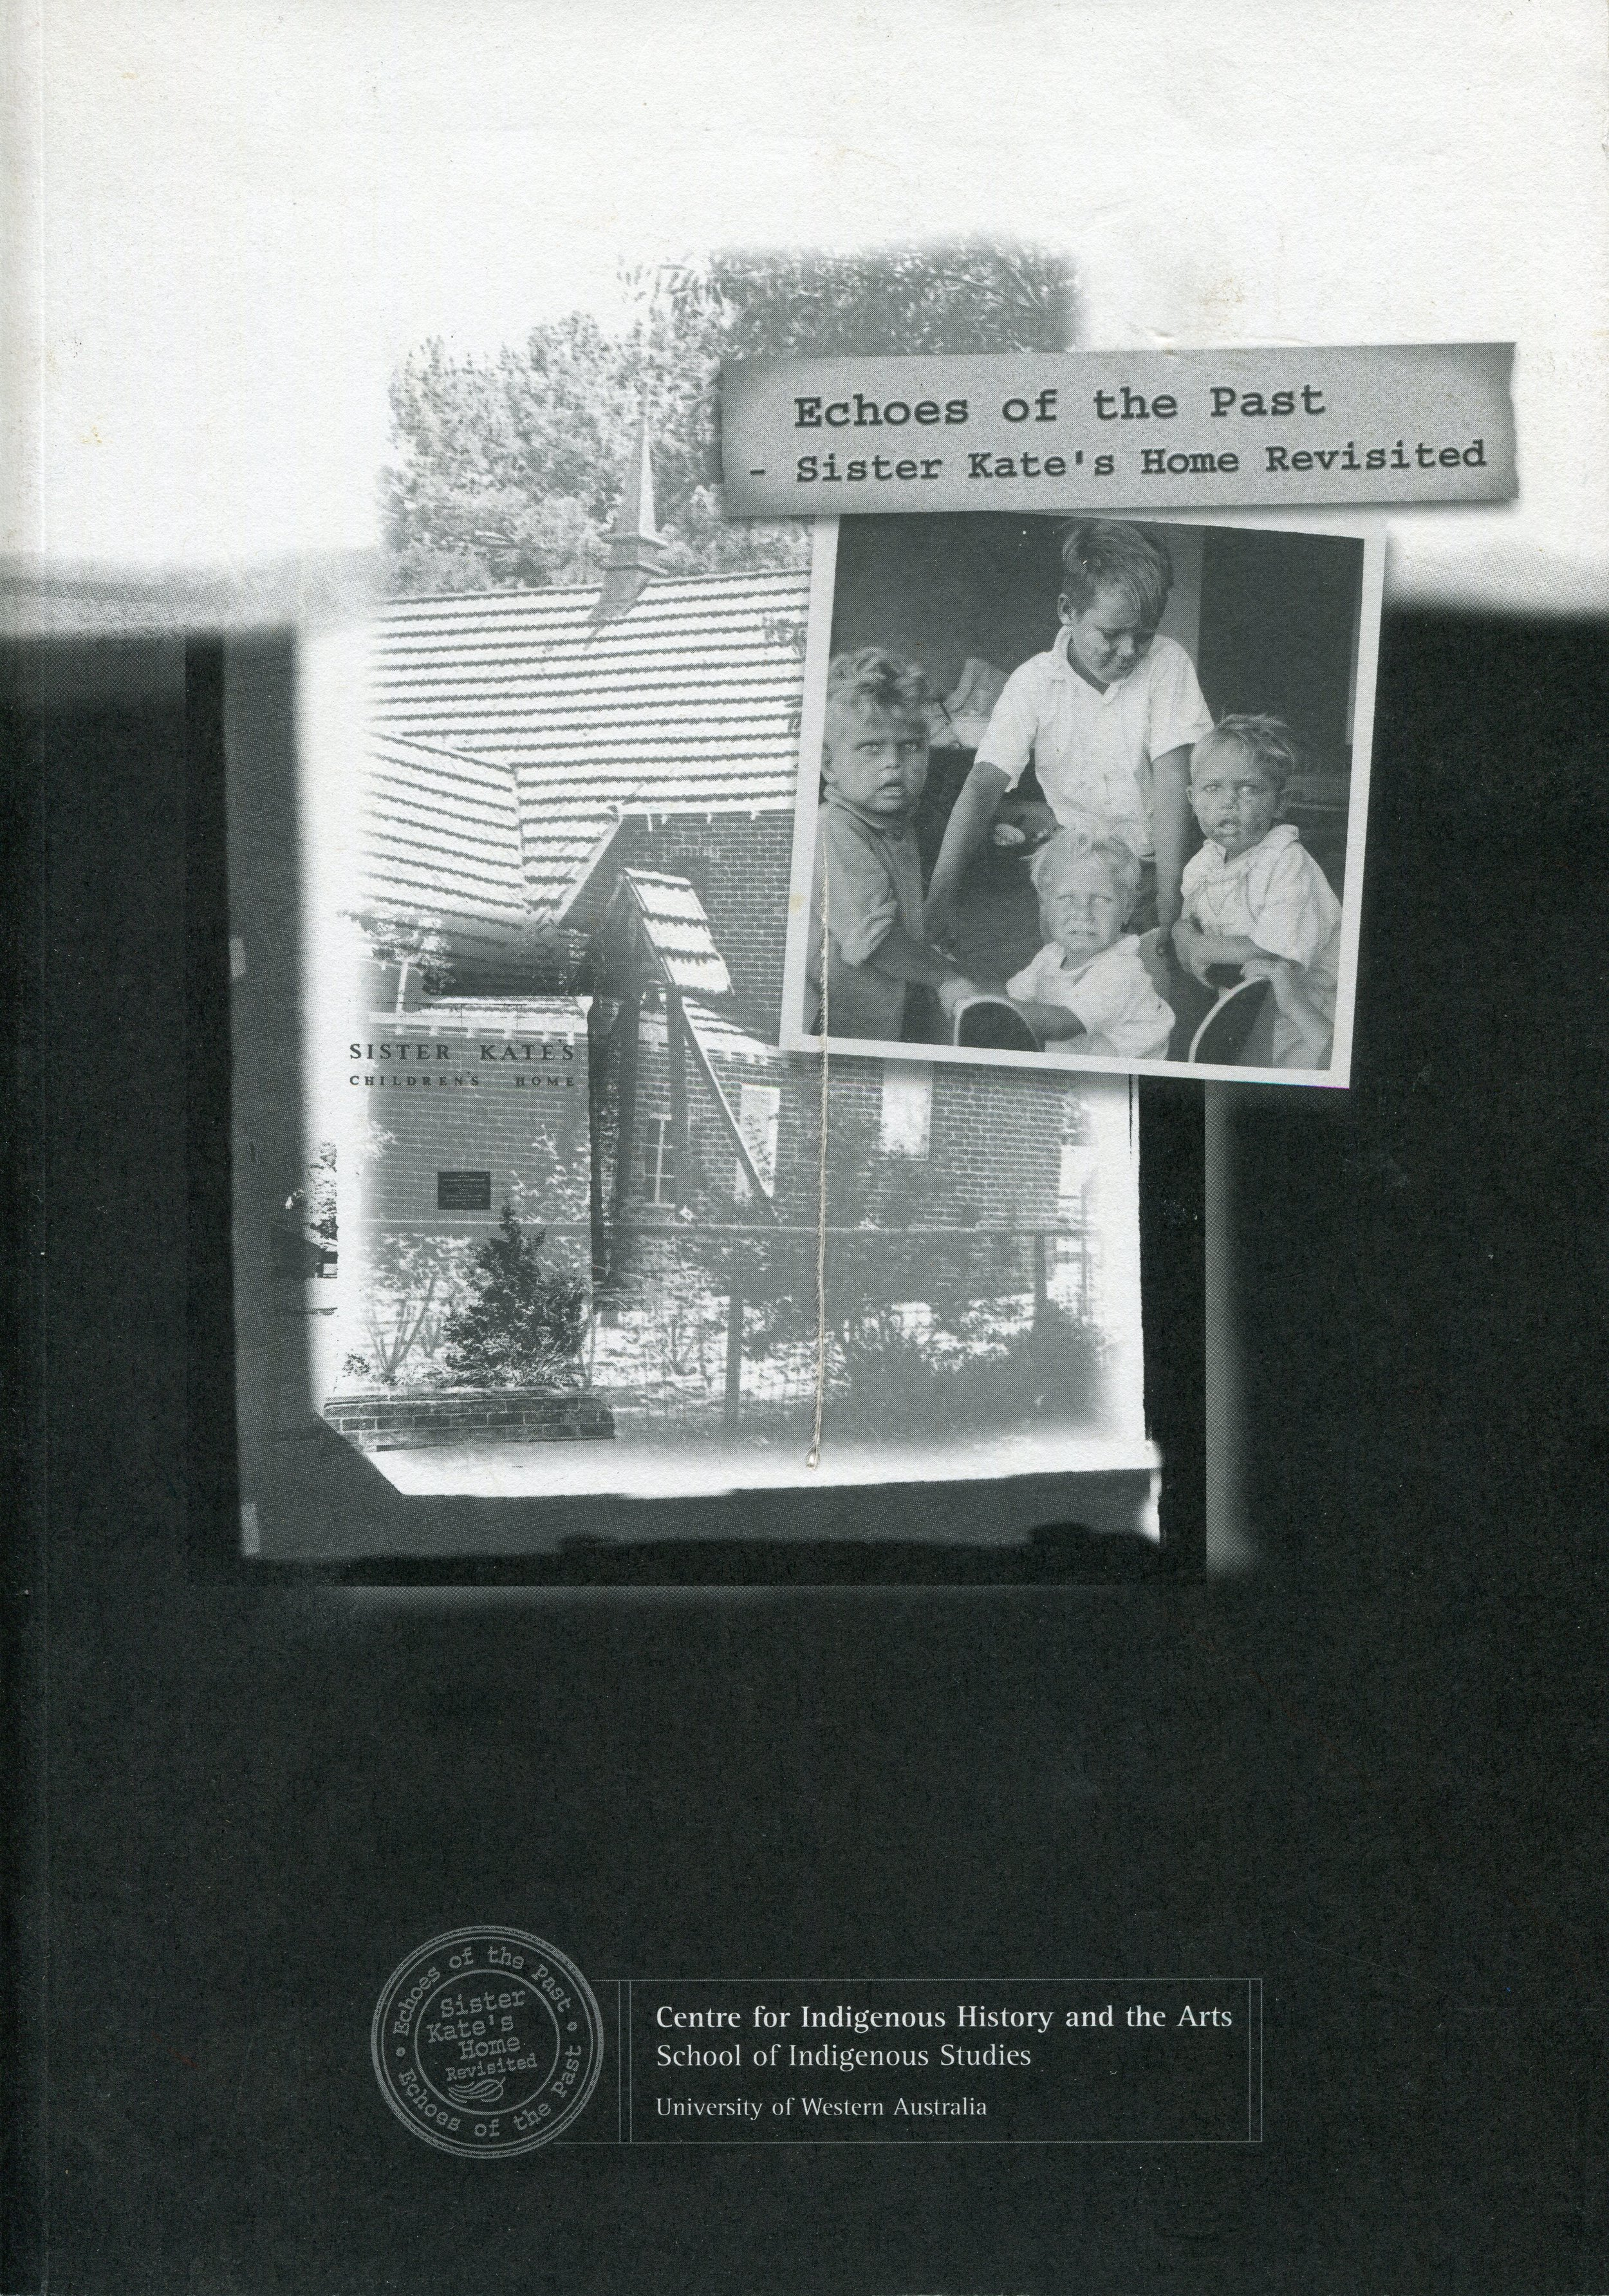 Echoes of the past : Sister Kate's home revisited  [Project manager : Tjalaminu Mia ; editor: Sally Morgan ; photography: Victor France ... [et al.]] .